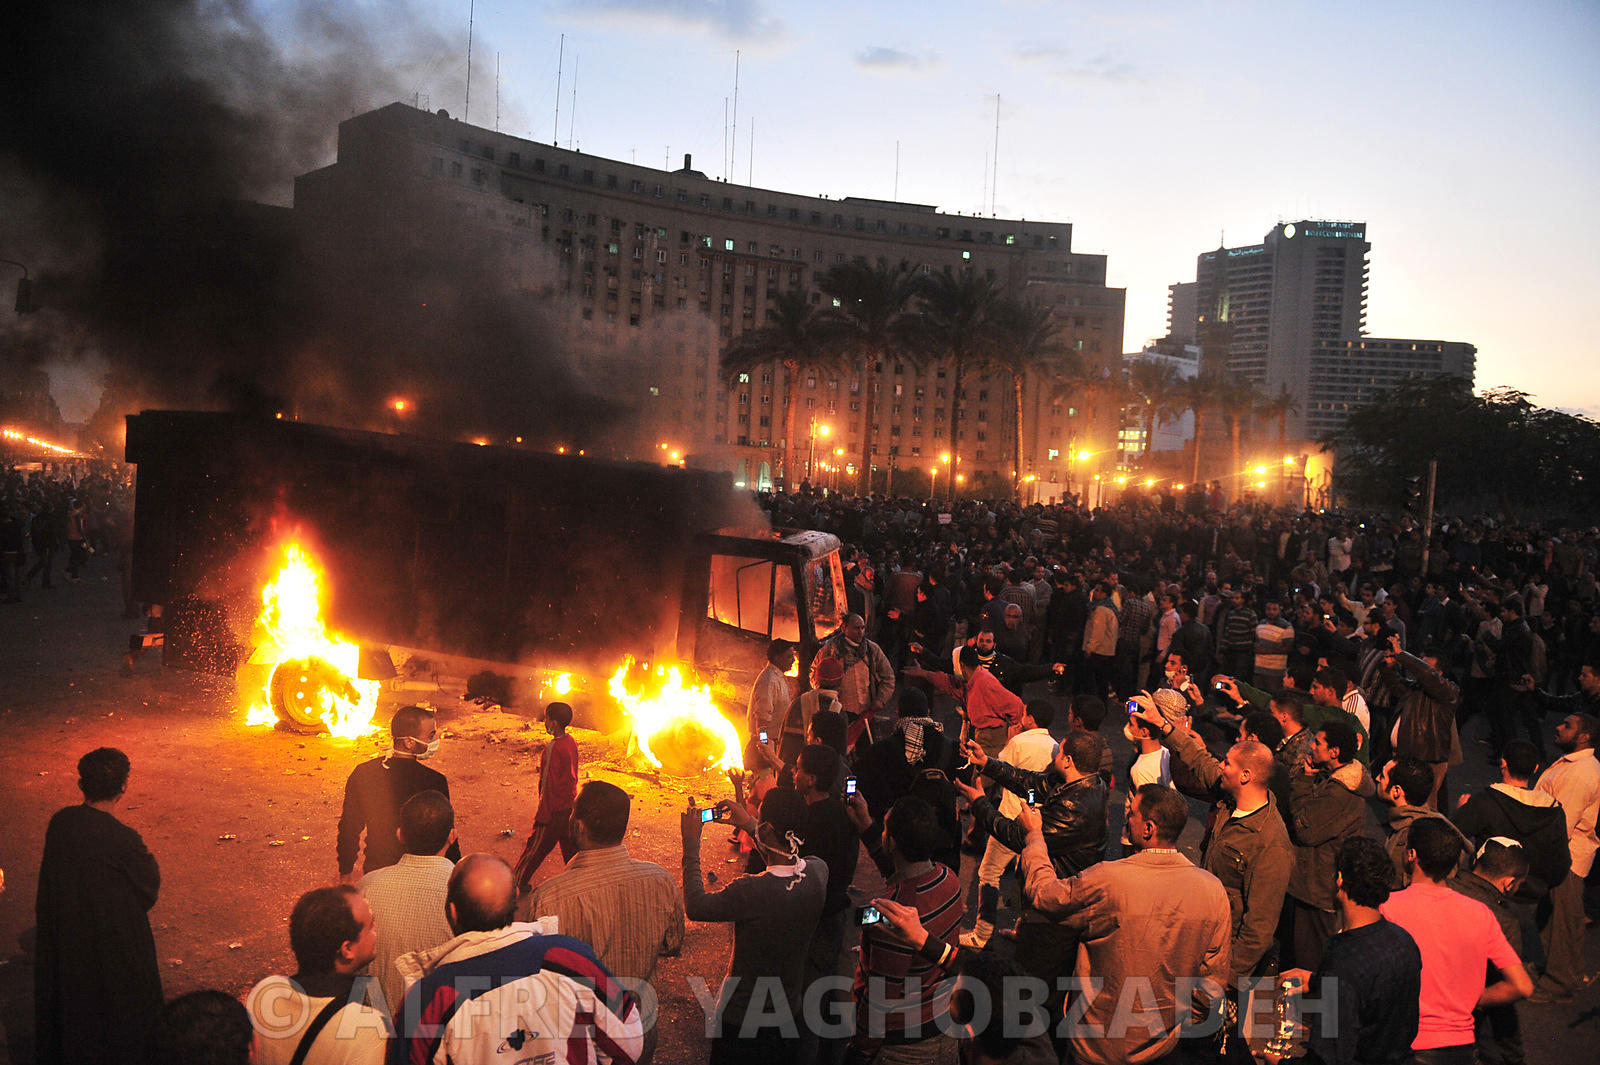 Egypt's Second Revolution November 2011